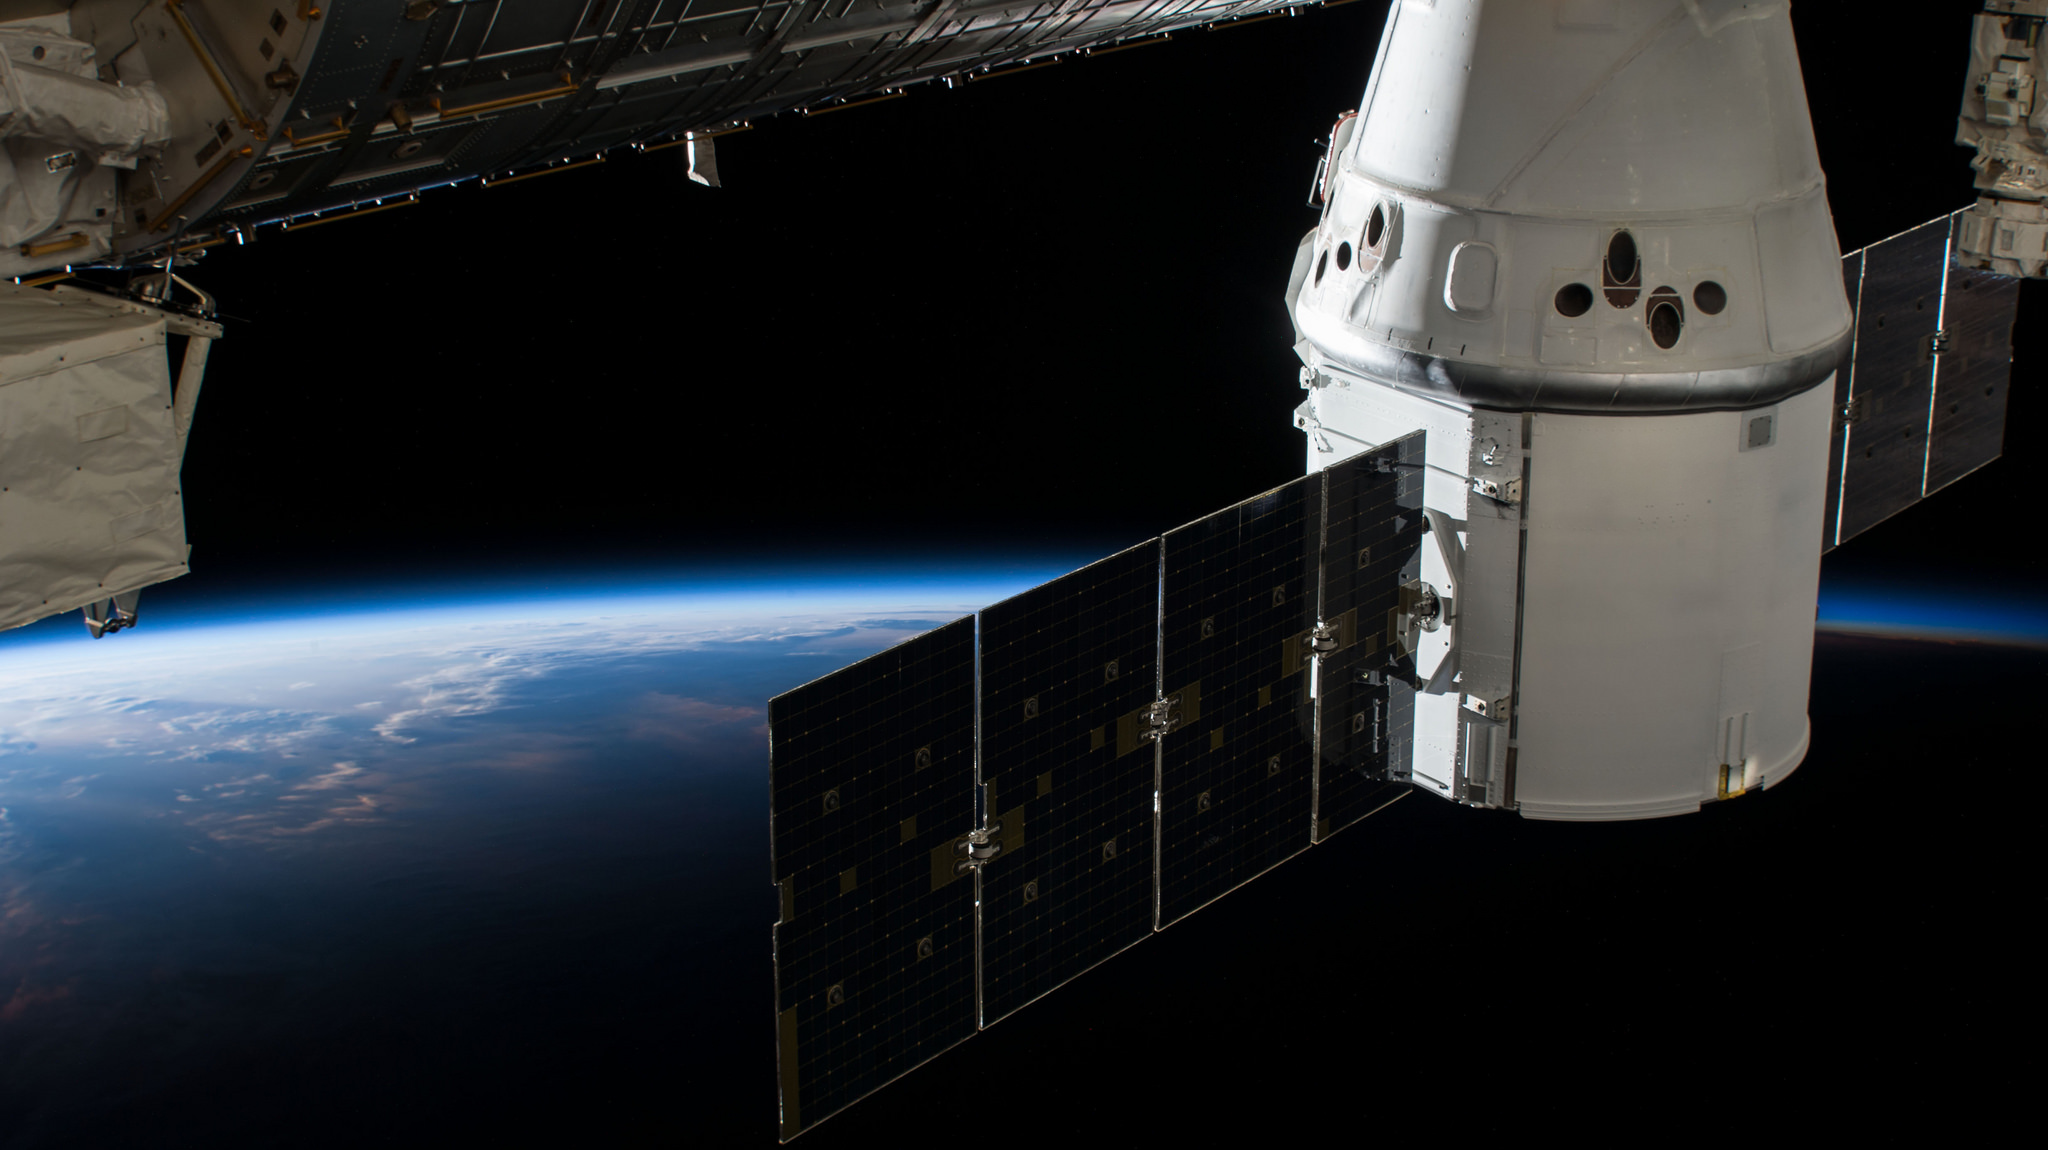 The CRS-15 Dragon attached to the ISS before being unberthed. Credit: NASA